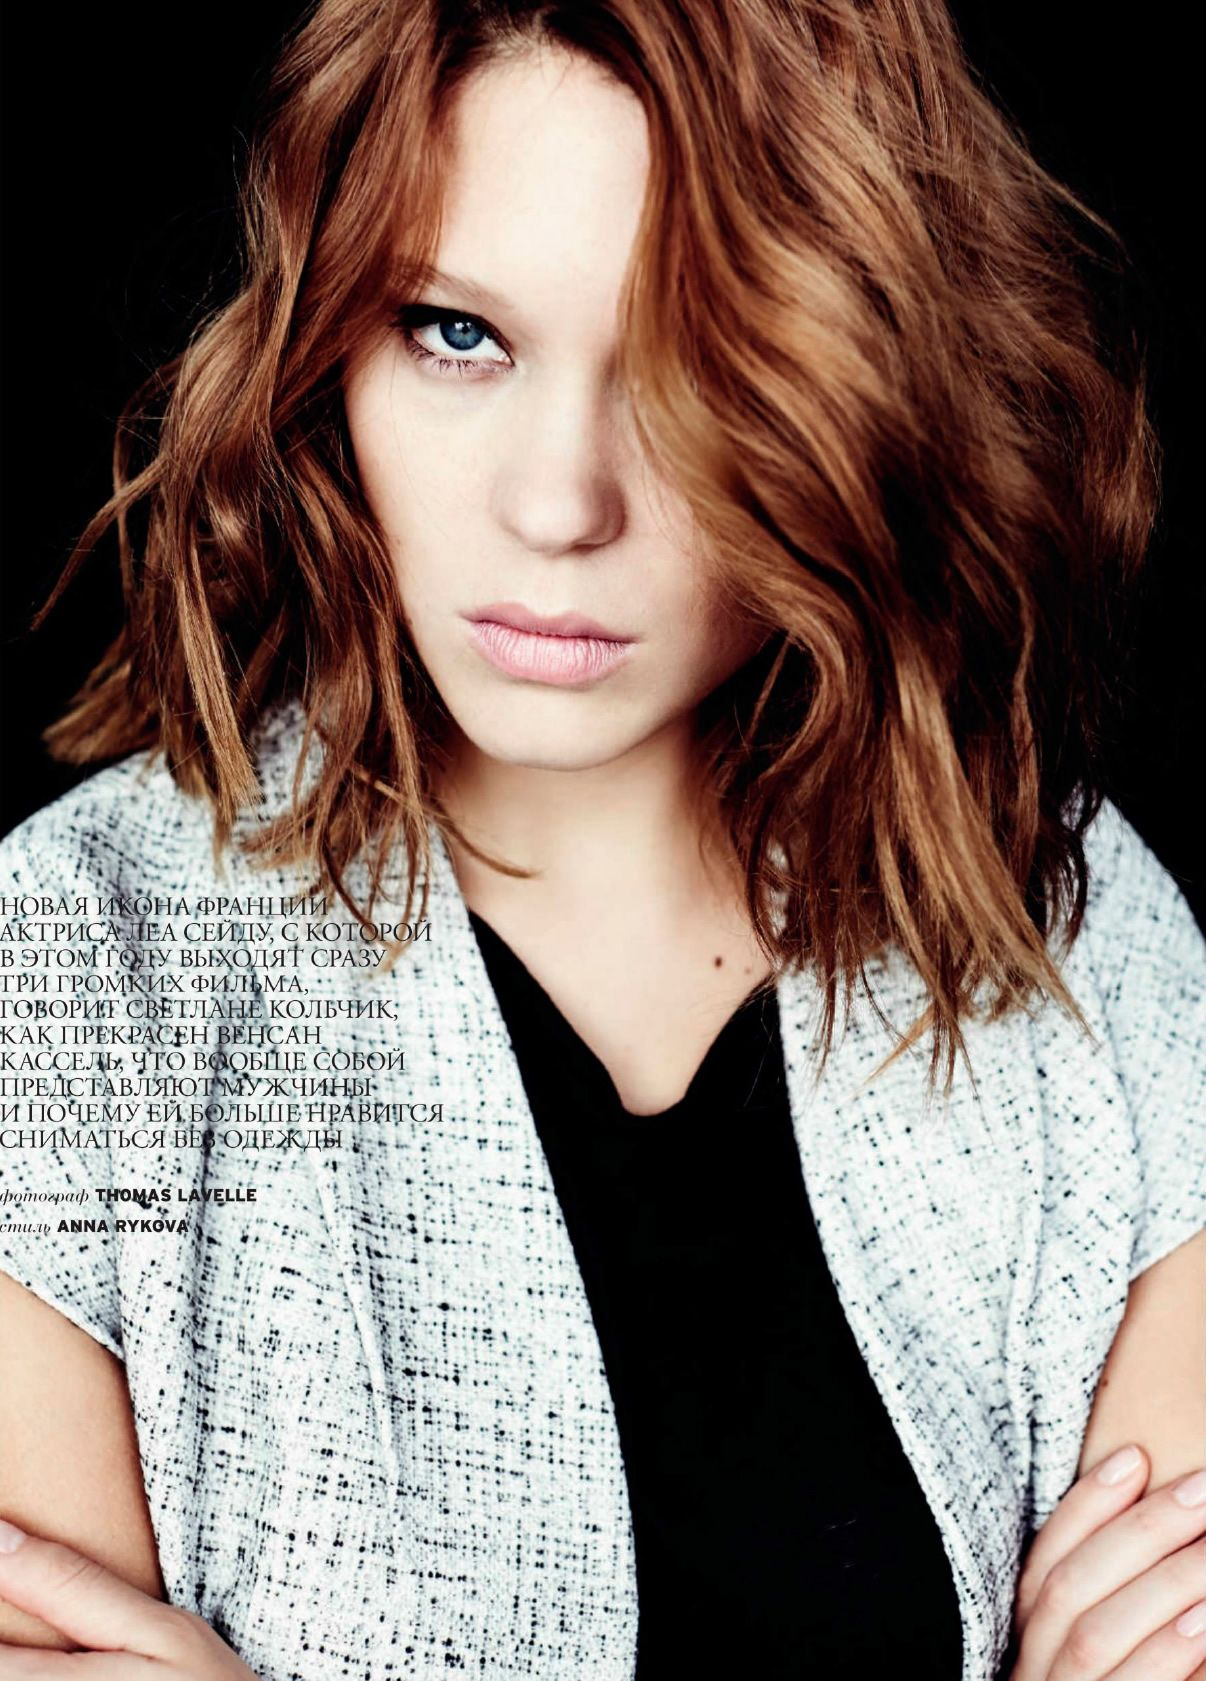 Léa Seydoux by Thomas Lavelle for Marie Claire Russia April 2014